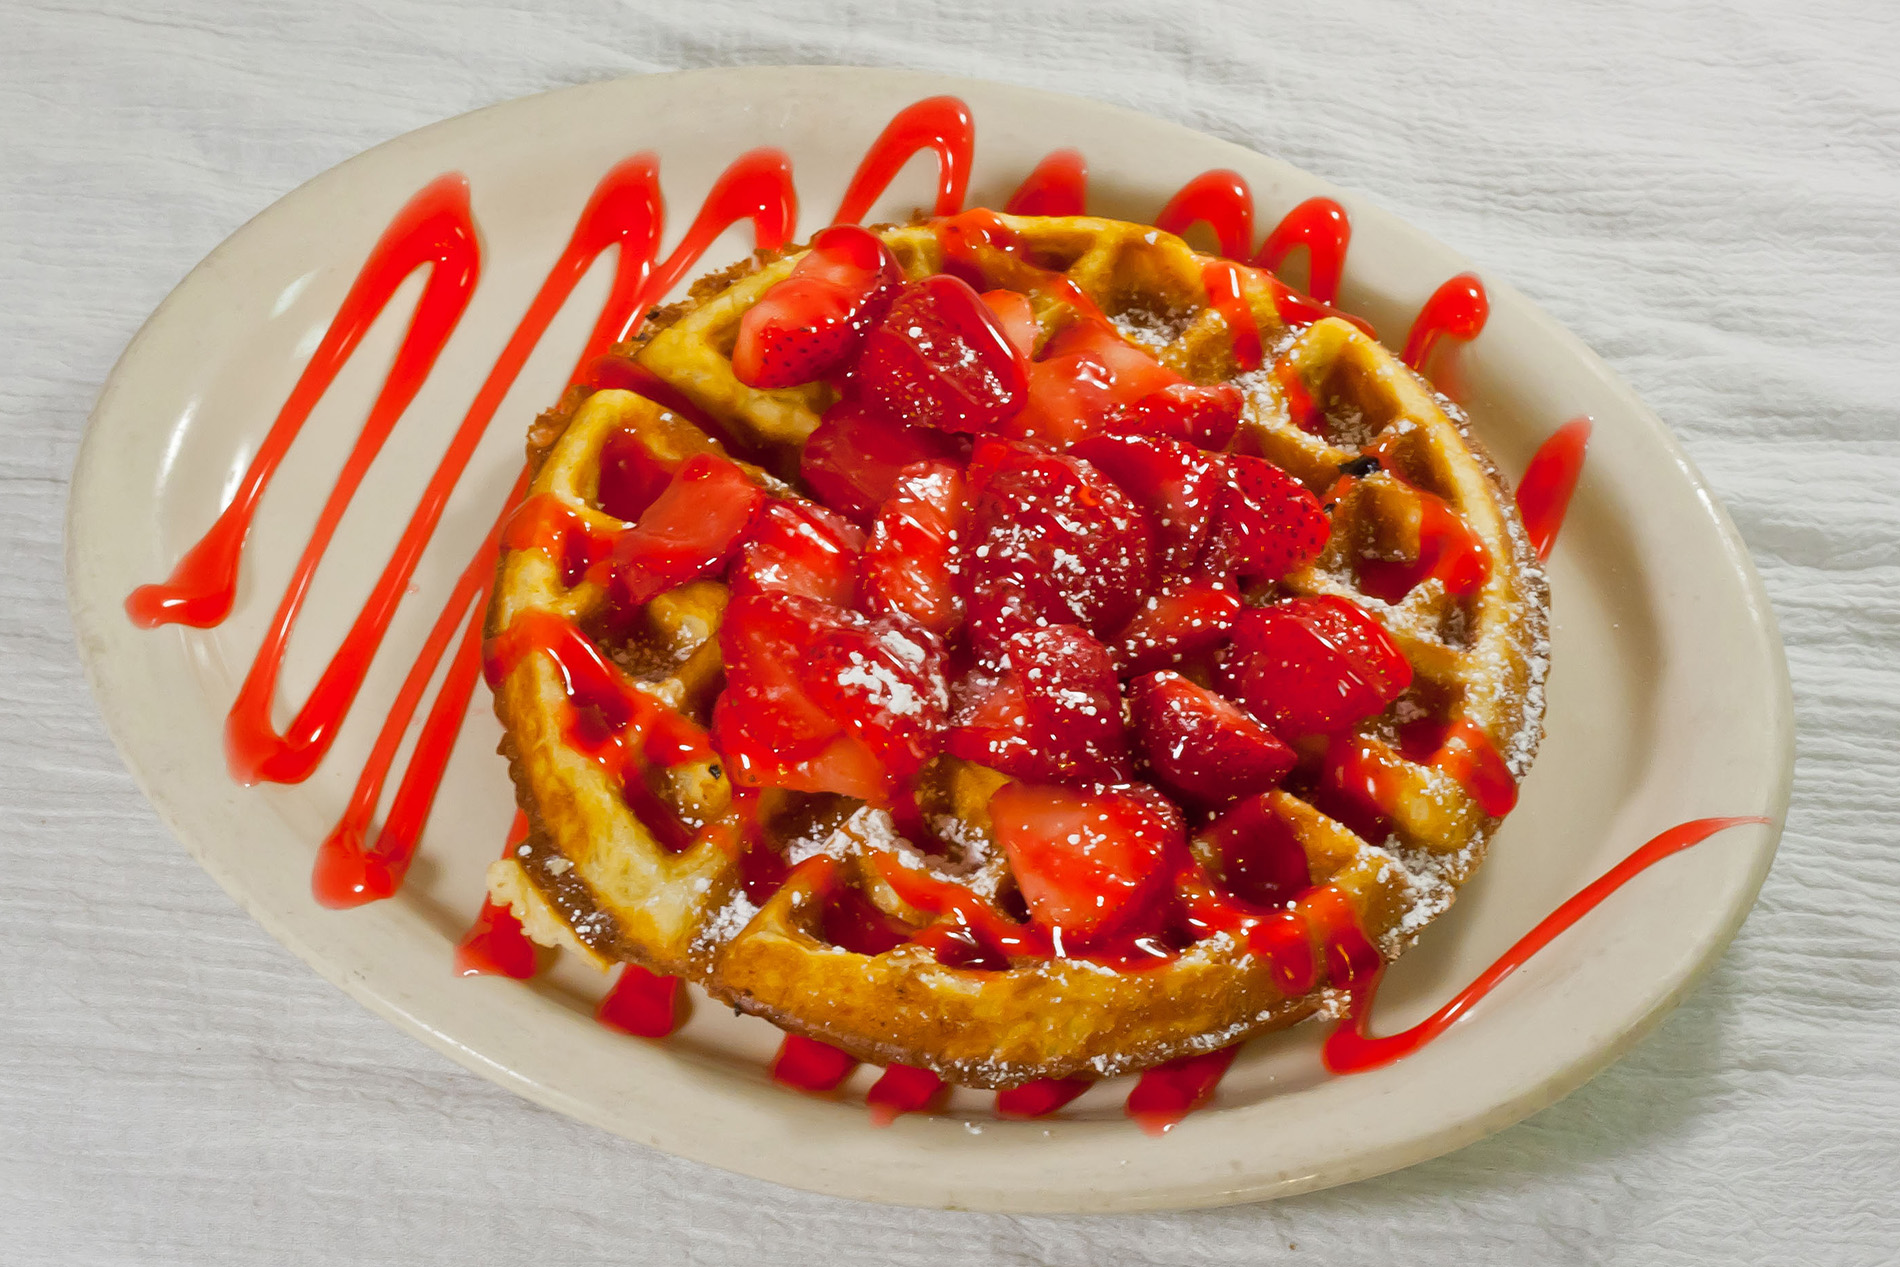 waffle on a plate covered in strawberries, strawberry syrup and powdered sugar